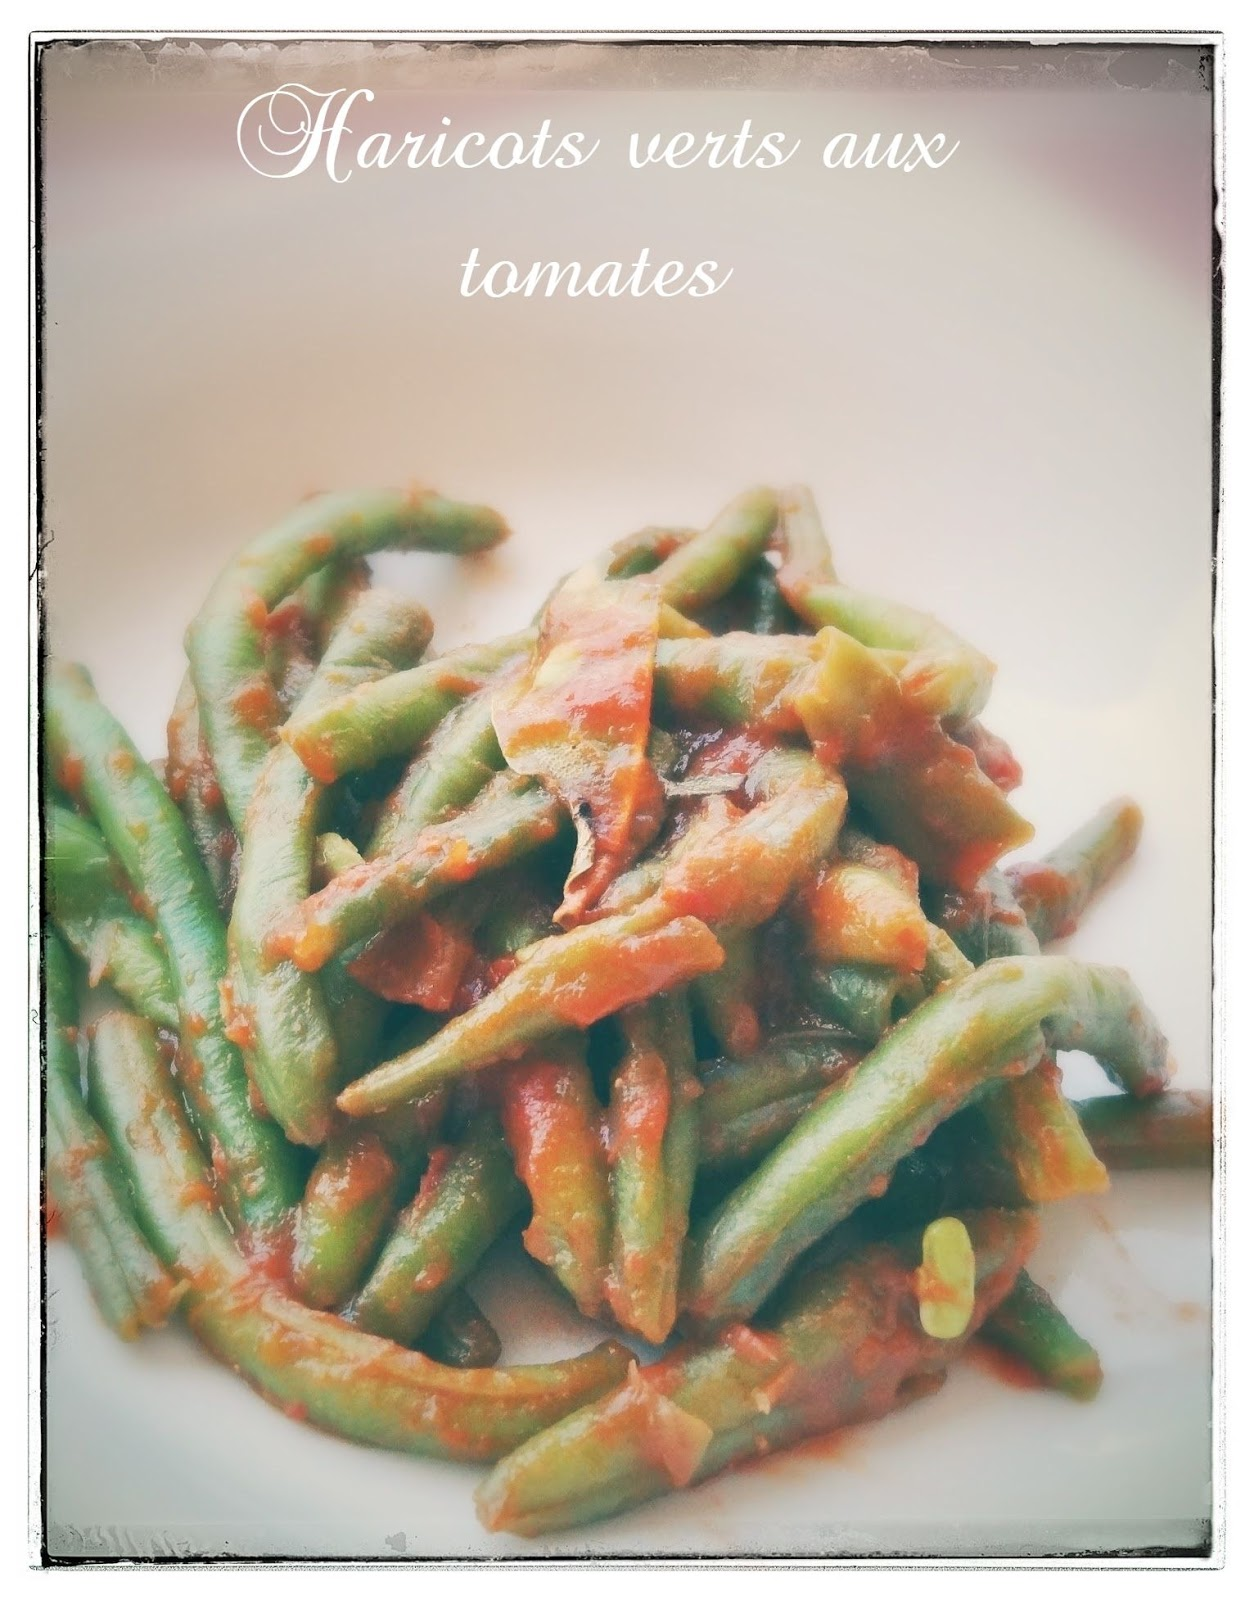 Haricots verts aux tomates au thermomix thermomix - Cuisiner des haricots verts ...